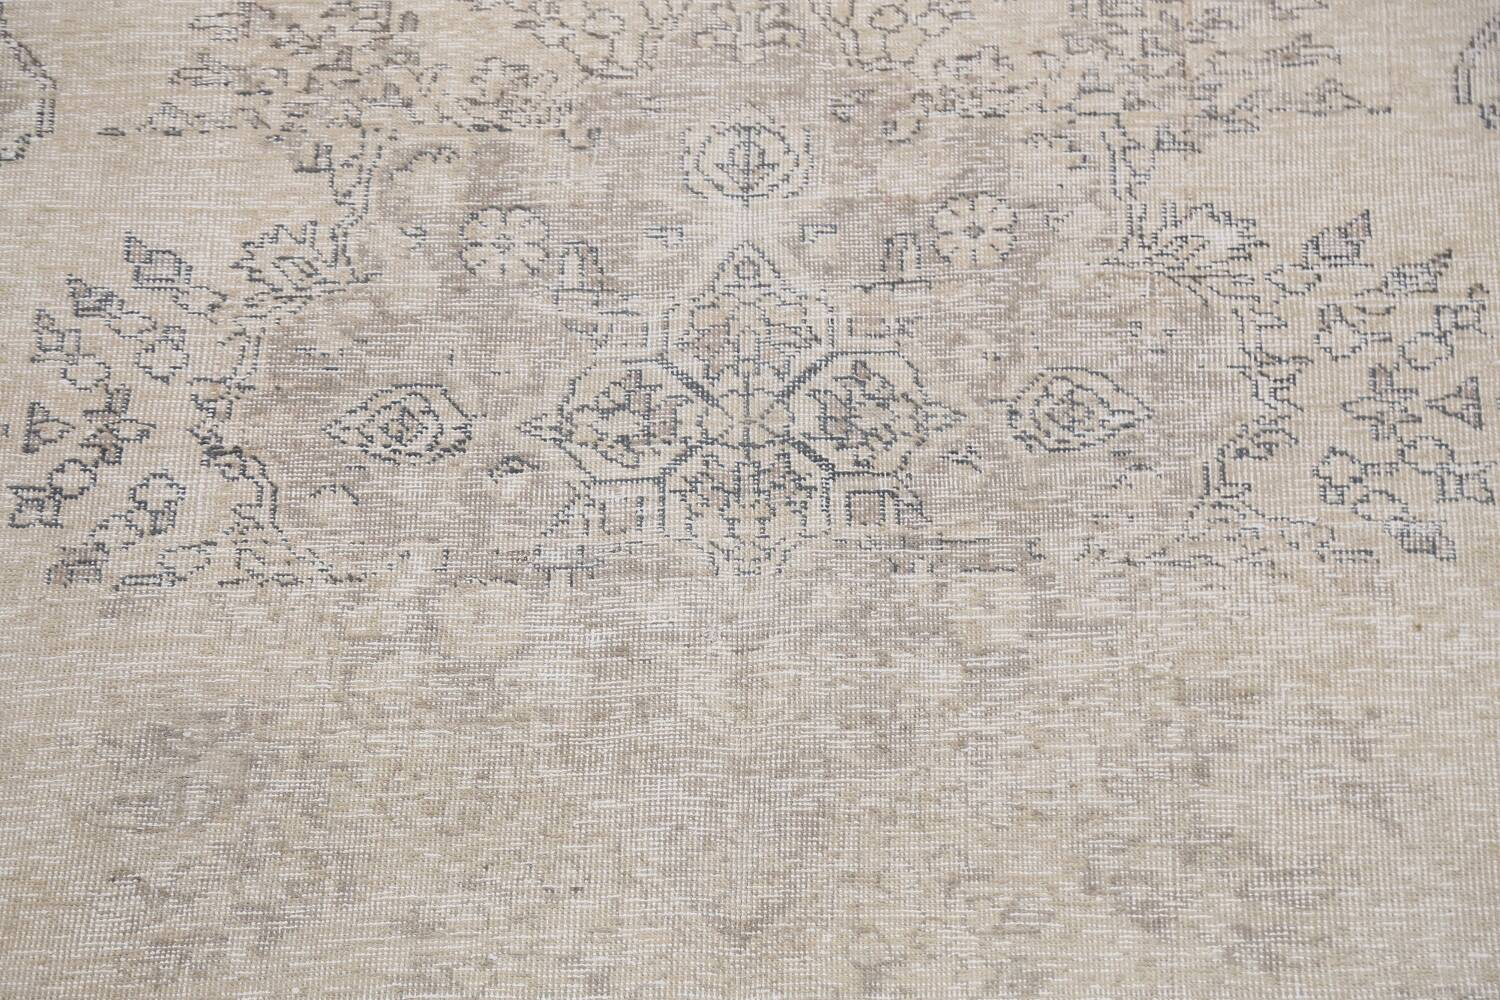 Muted Distressed Floral Tabriz Persian Area Rug 6x8 image 4